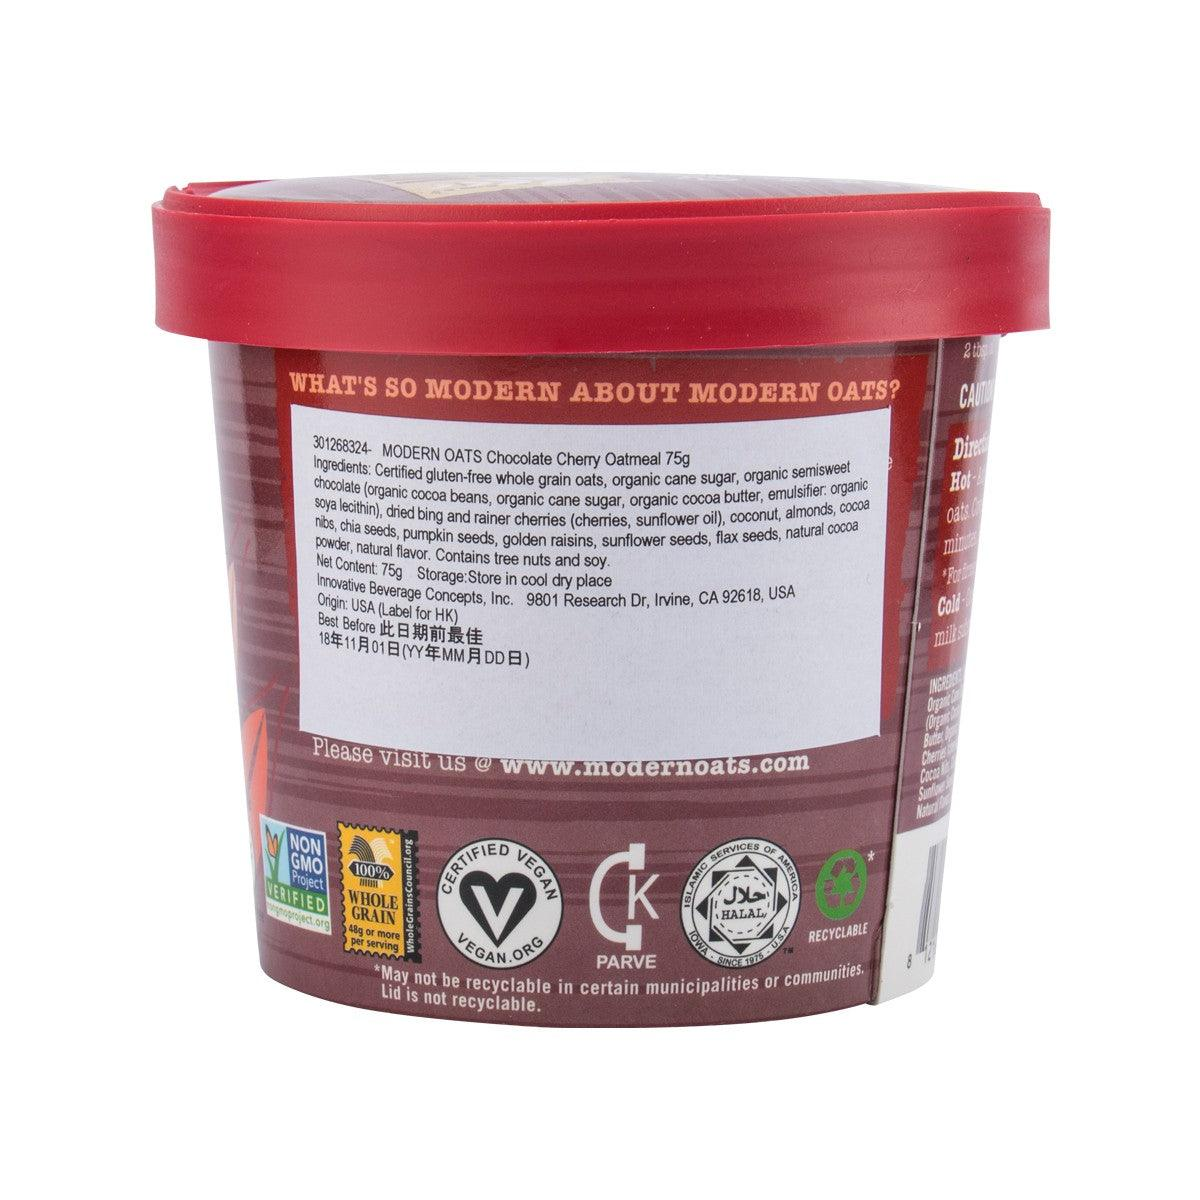 Modern Oats Chocolate Cherry Oatmeal75g Citysuper